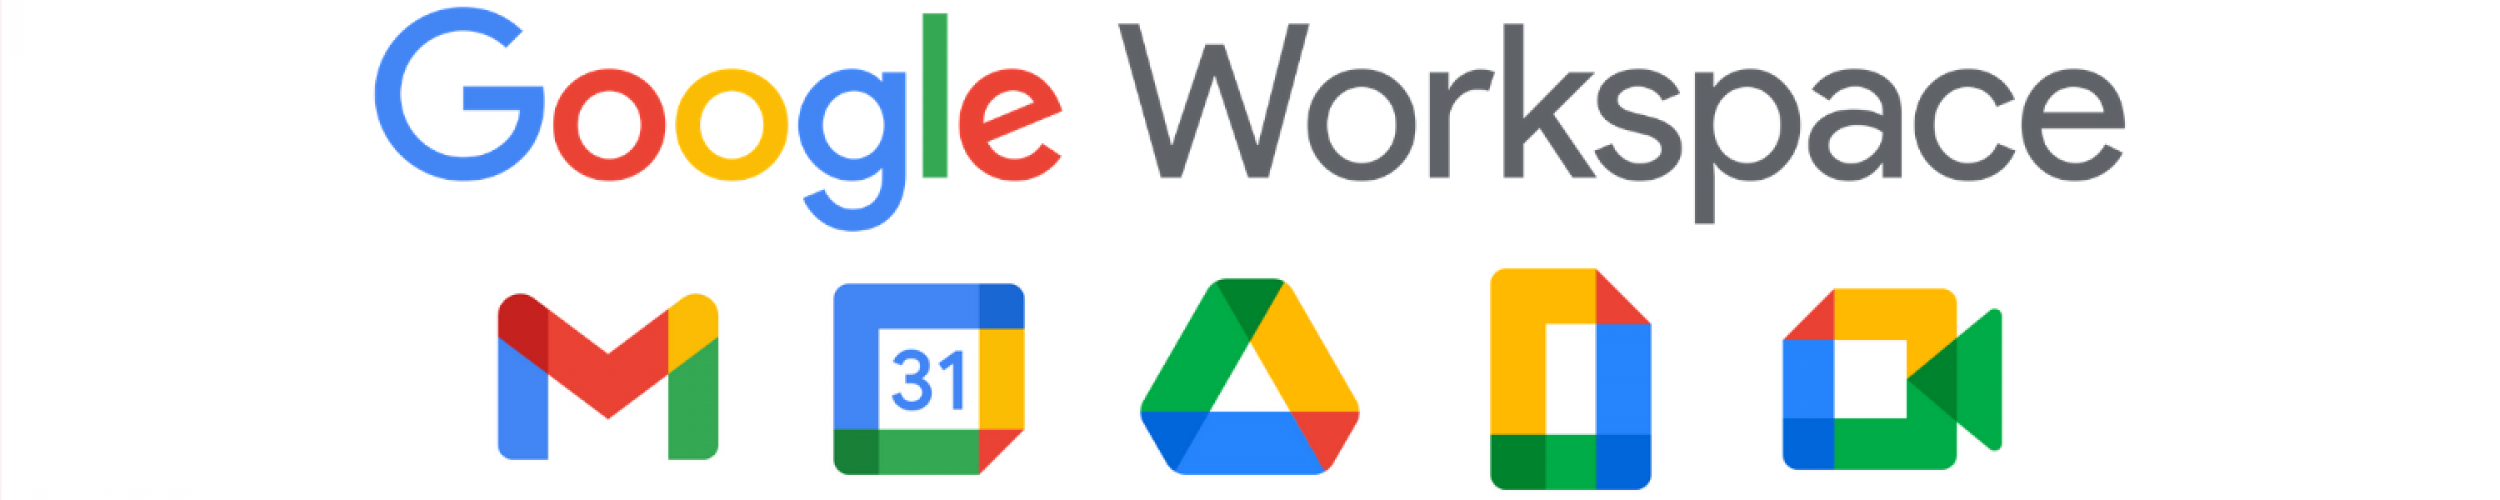 Google Workspace training